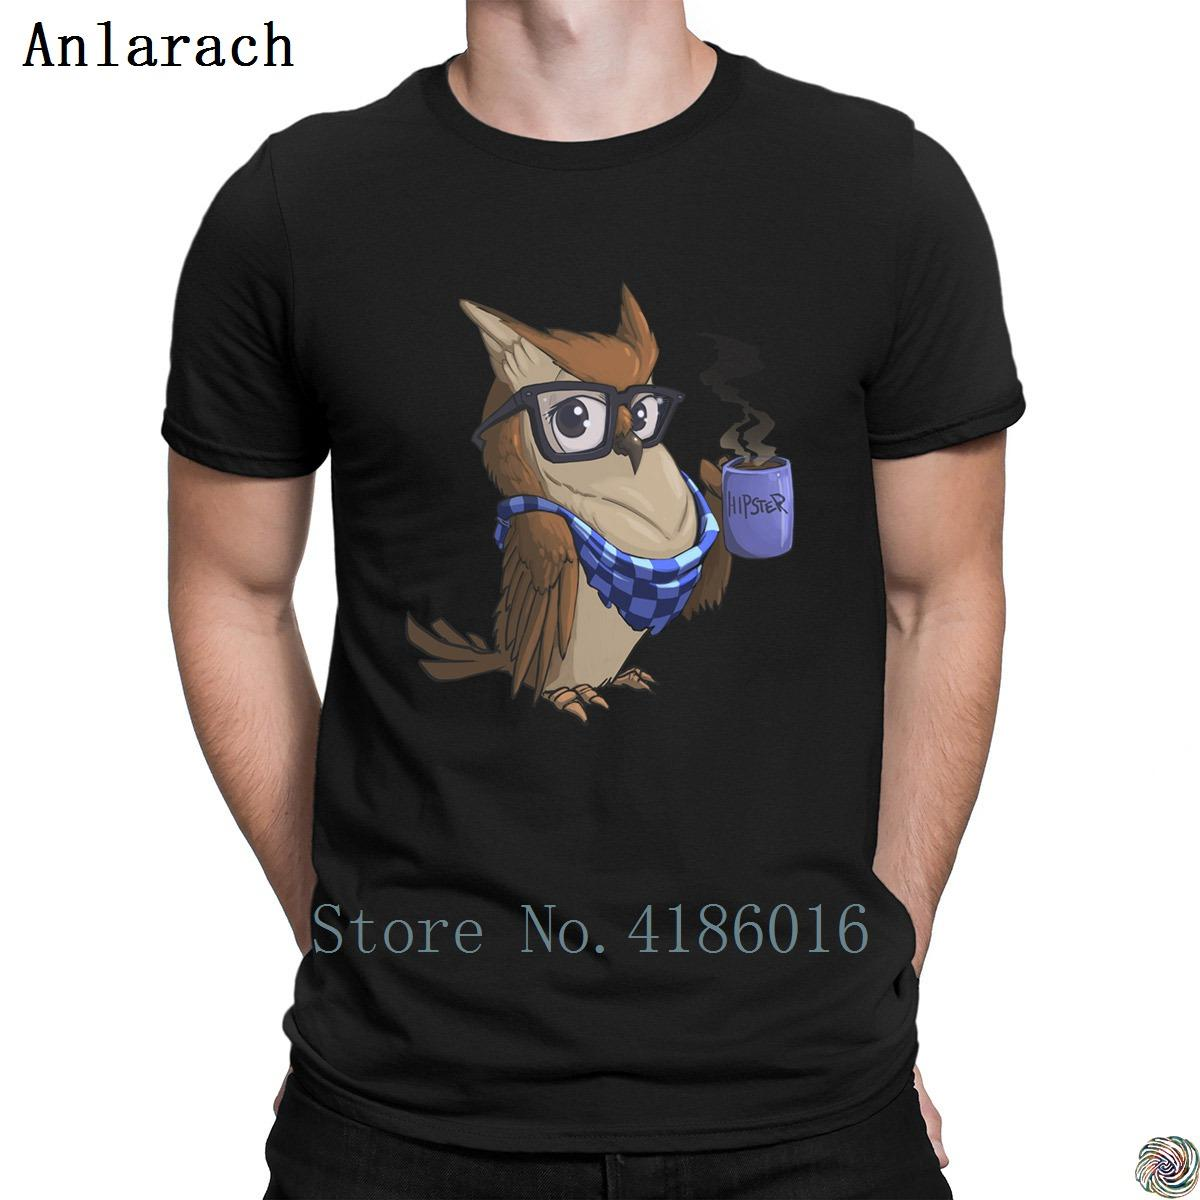 Hipster Owl t-shirts fashion 2018 Free Shipping Family t shirt for men Character streetwear tops Anlarach size S-3xl